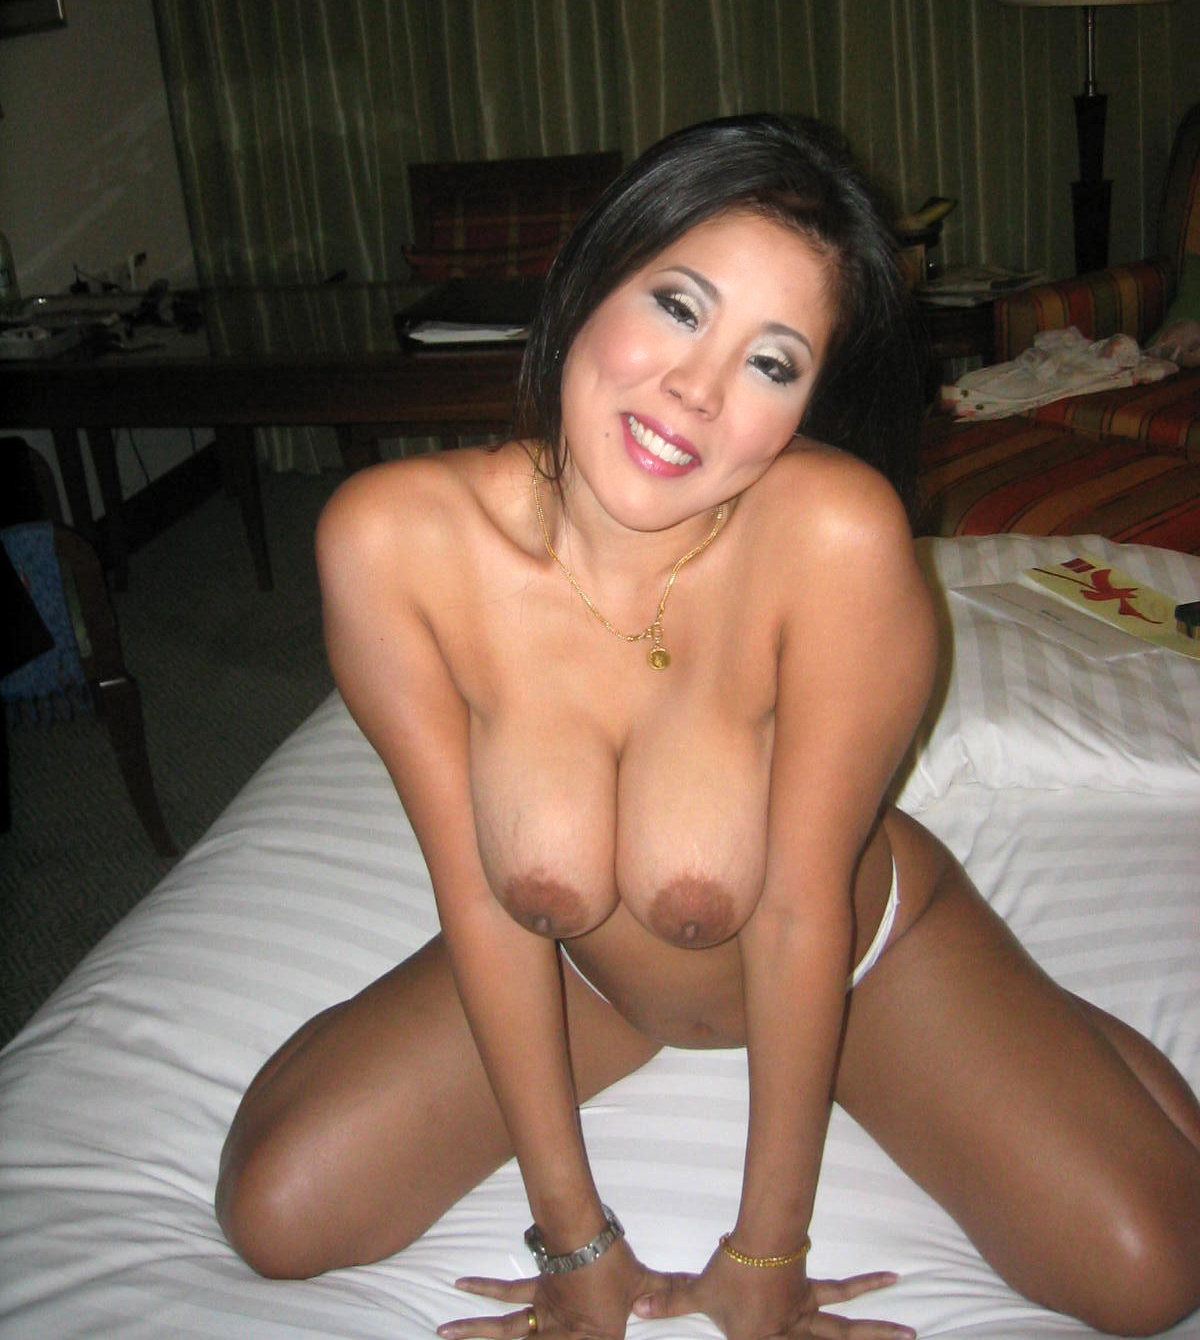 slut strips and wants to fuck porn